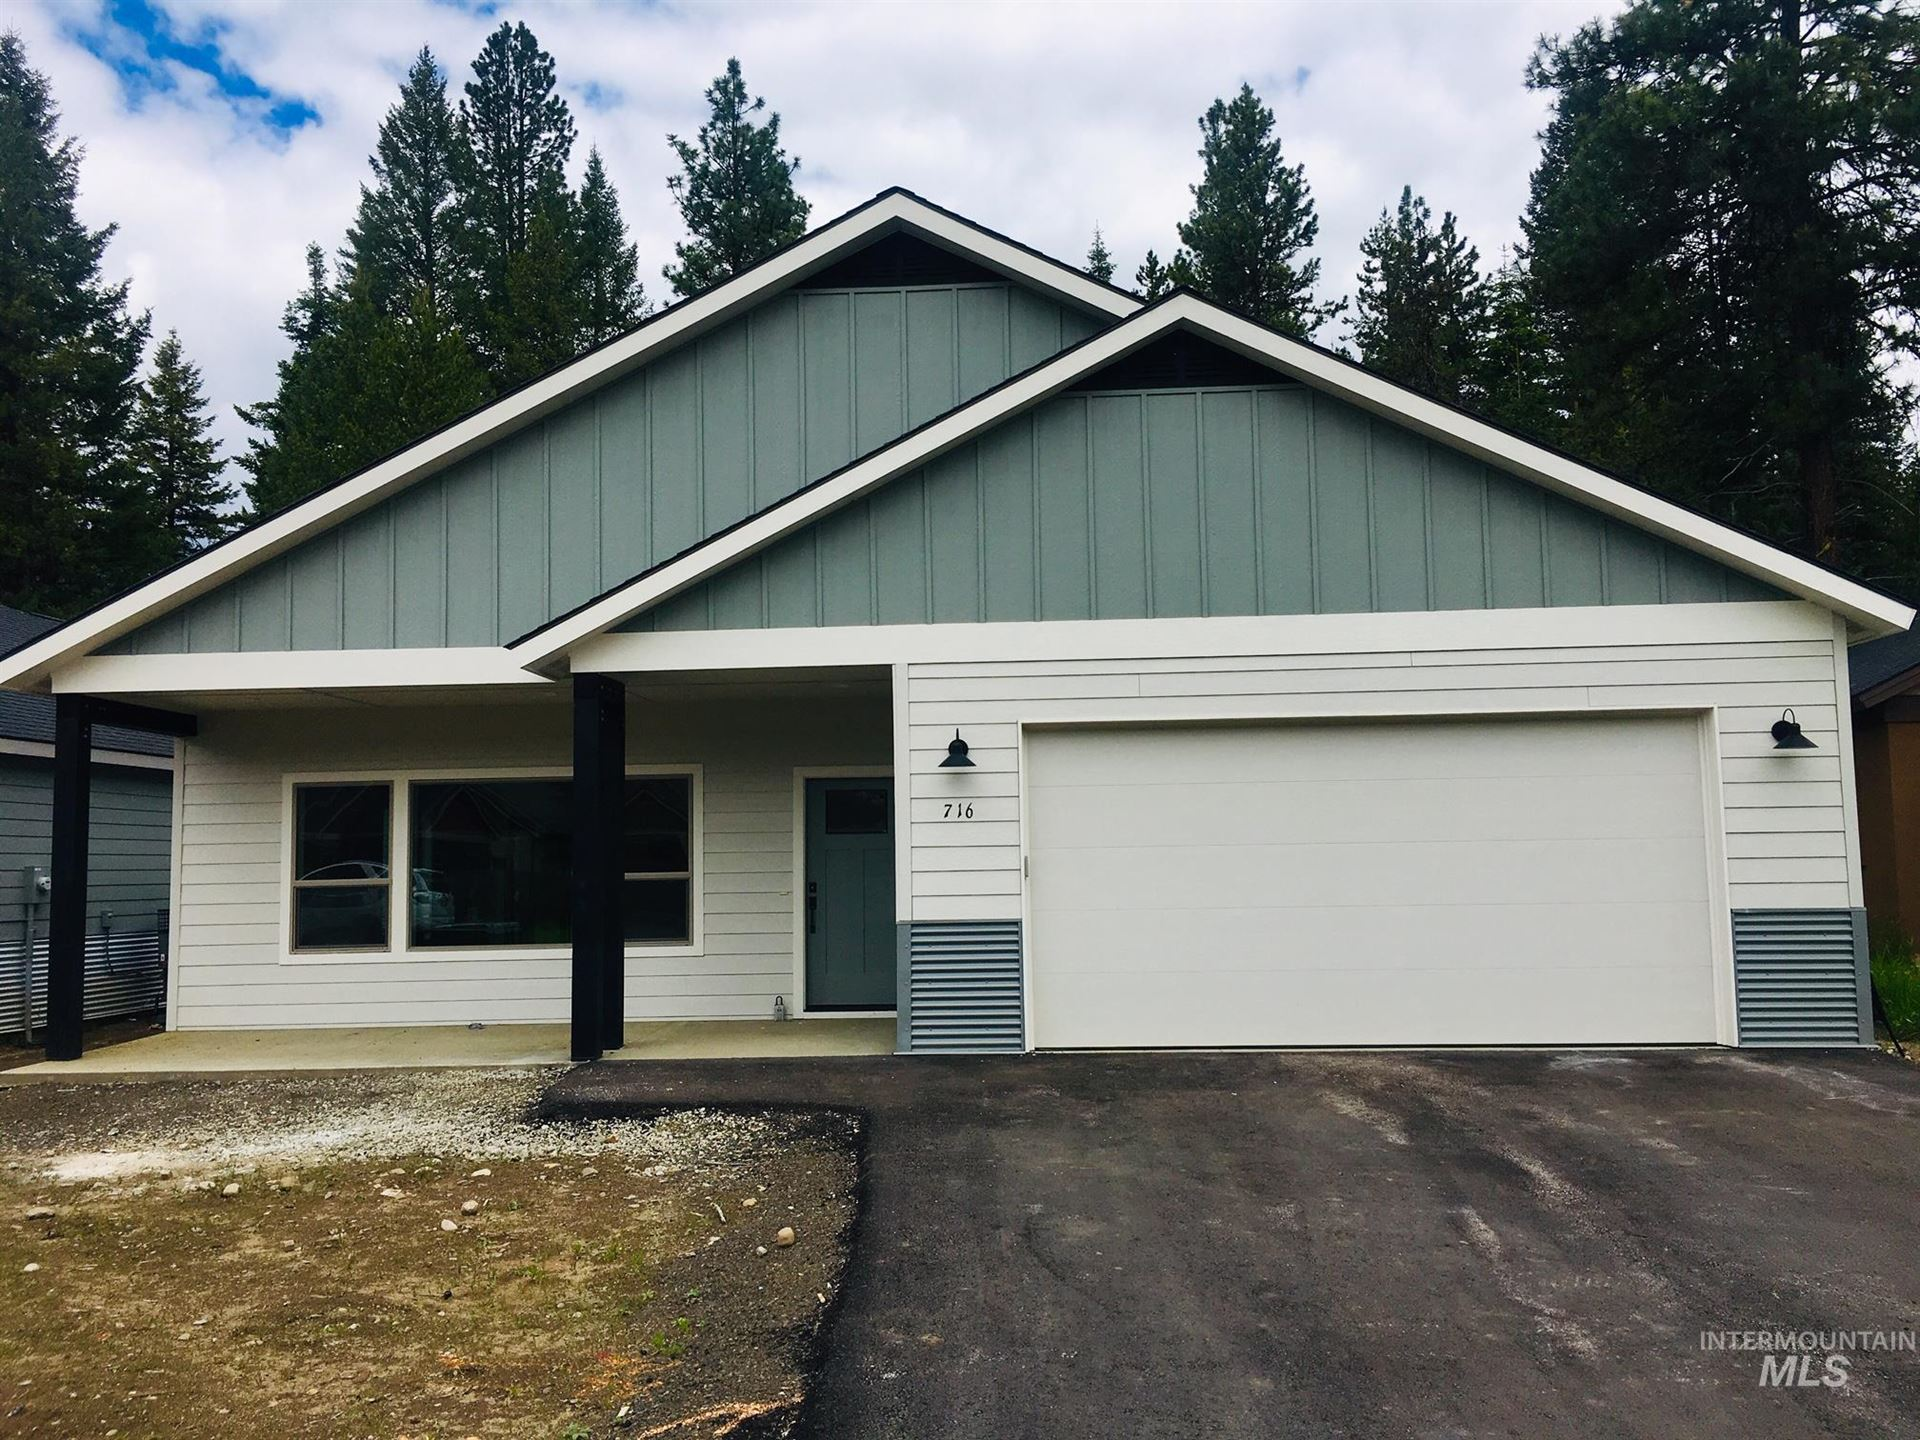 716 Deer Forest Drive, McCall, ID 83638 - MLS#: 98732948